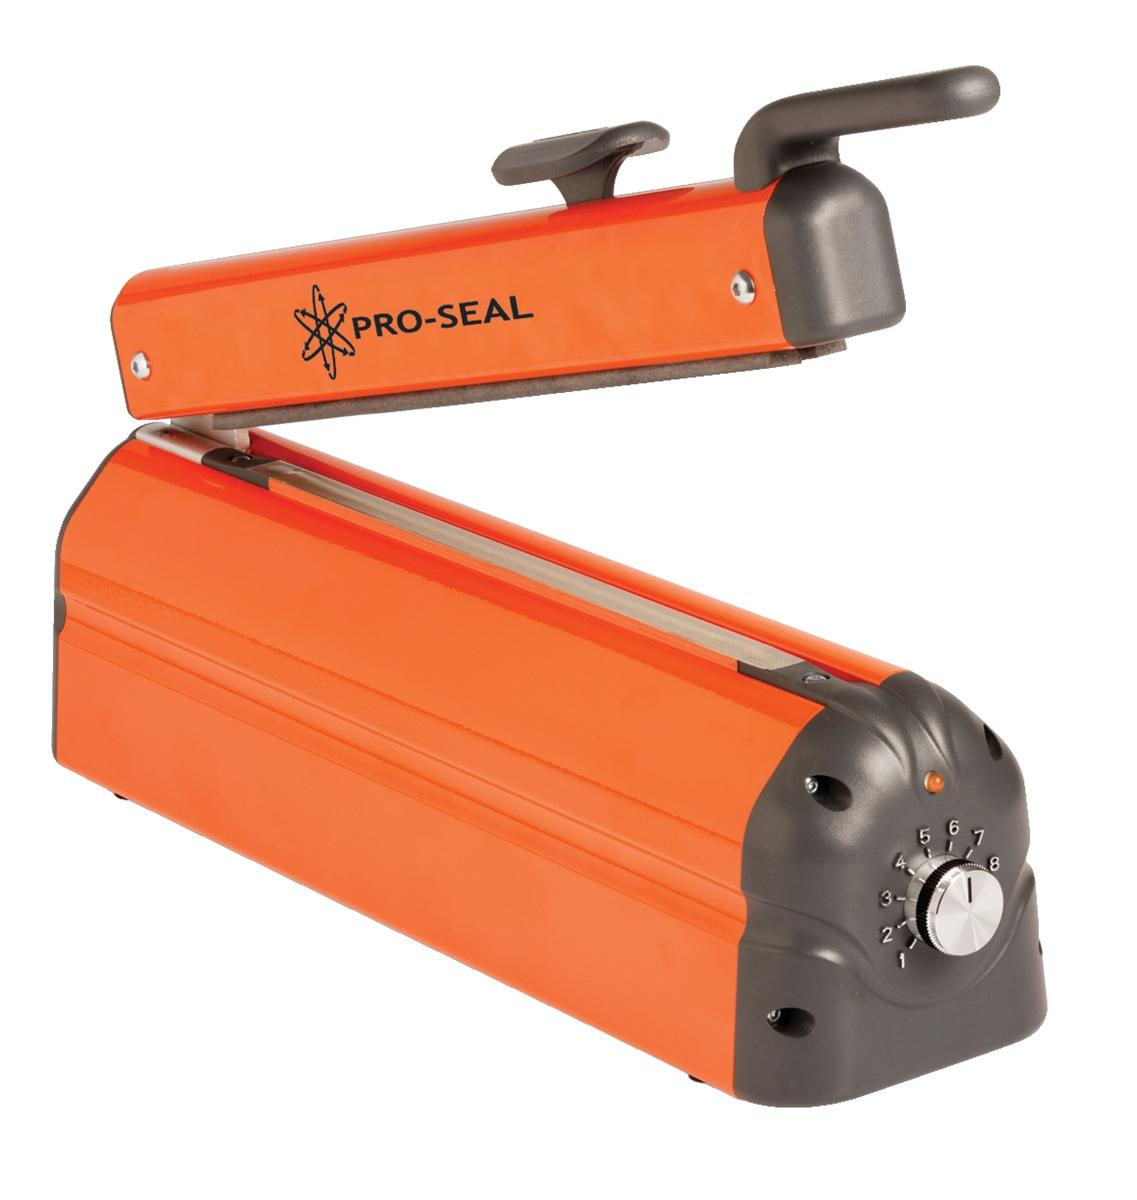 Image for Adpac Impulse Heat Sealer With Cutter Adjustable Sealing-time Size 620mm Ref C620